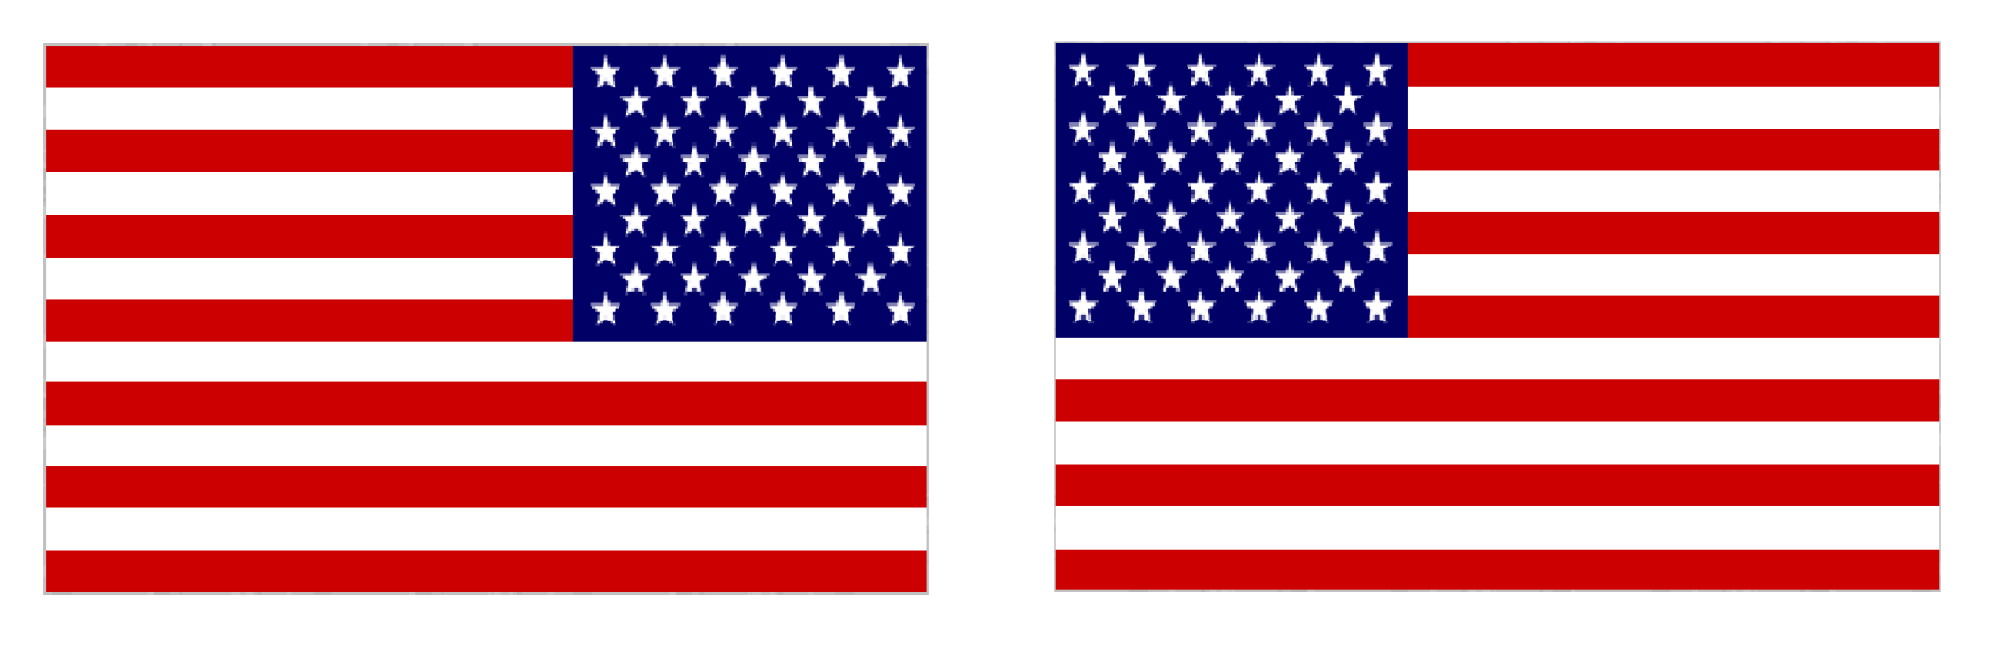 hight resolution of clip arts related to american flag clip art vectors download free vector art image 8